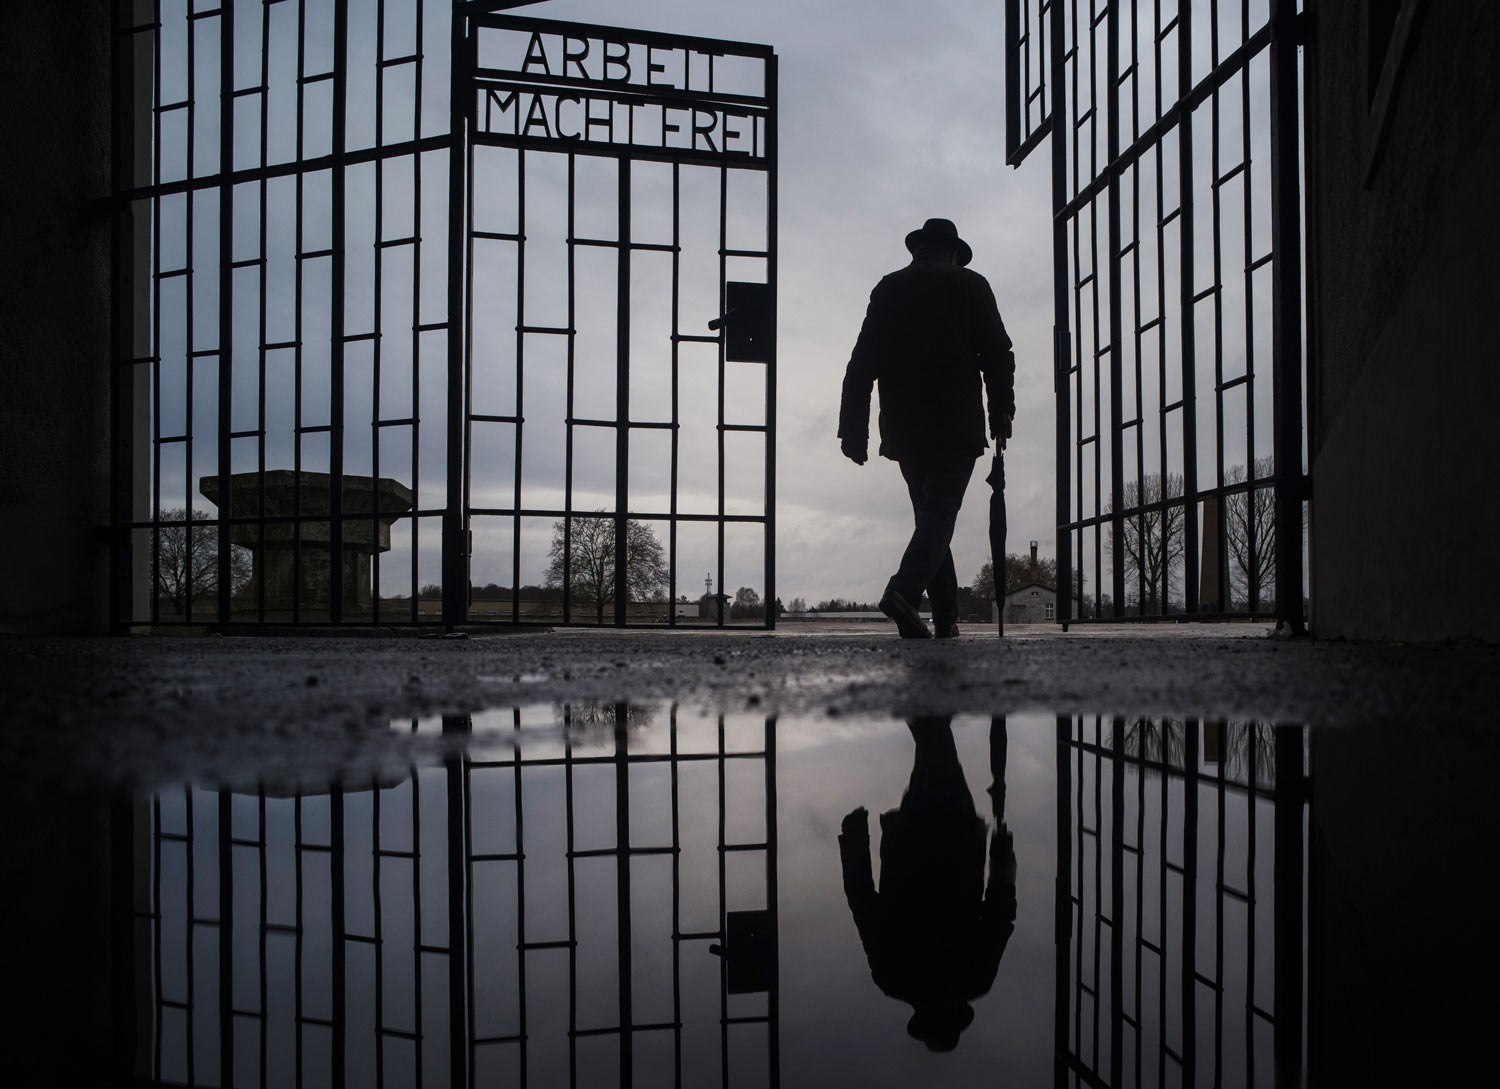 A man walks through the gate of the Sachsenhausen Nazi death camp with the phrase 'Arbeit macht frei' (work sets you free) during International Holocaust Remembrance Day in Oranienburg, about 30 kilometers (18 miles), north of Berlin, Germany, on Sunday, Jan. 27, 2019. The anniversary marks the liberation of the Auschwitz Nazi death camp on Jan. 27, 1945. (AP Photo/Markus Schreiber)